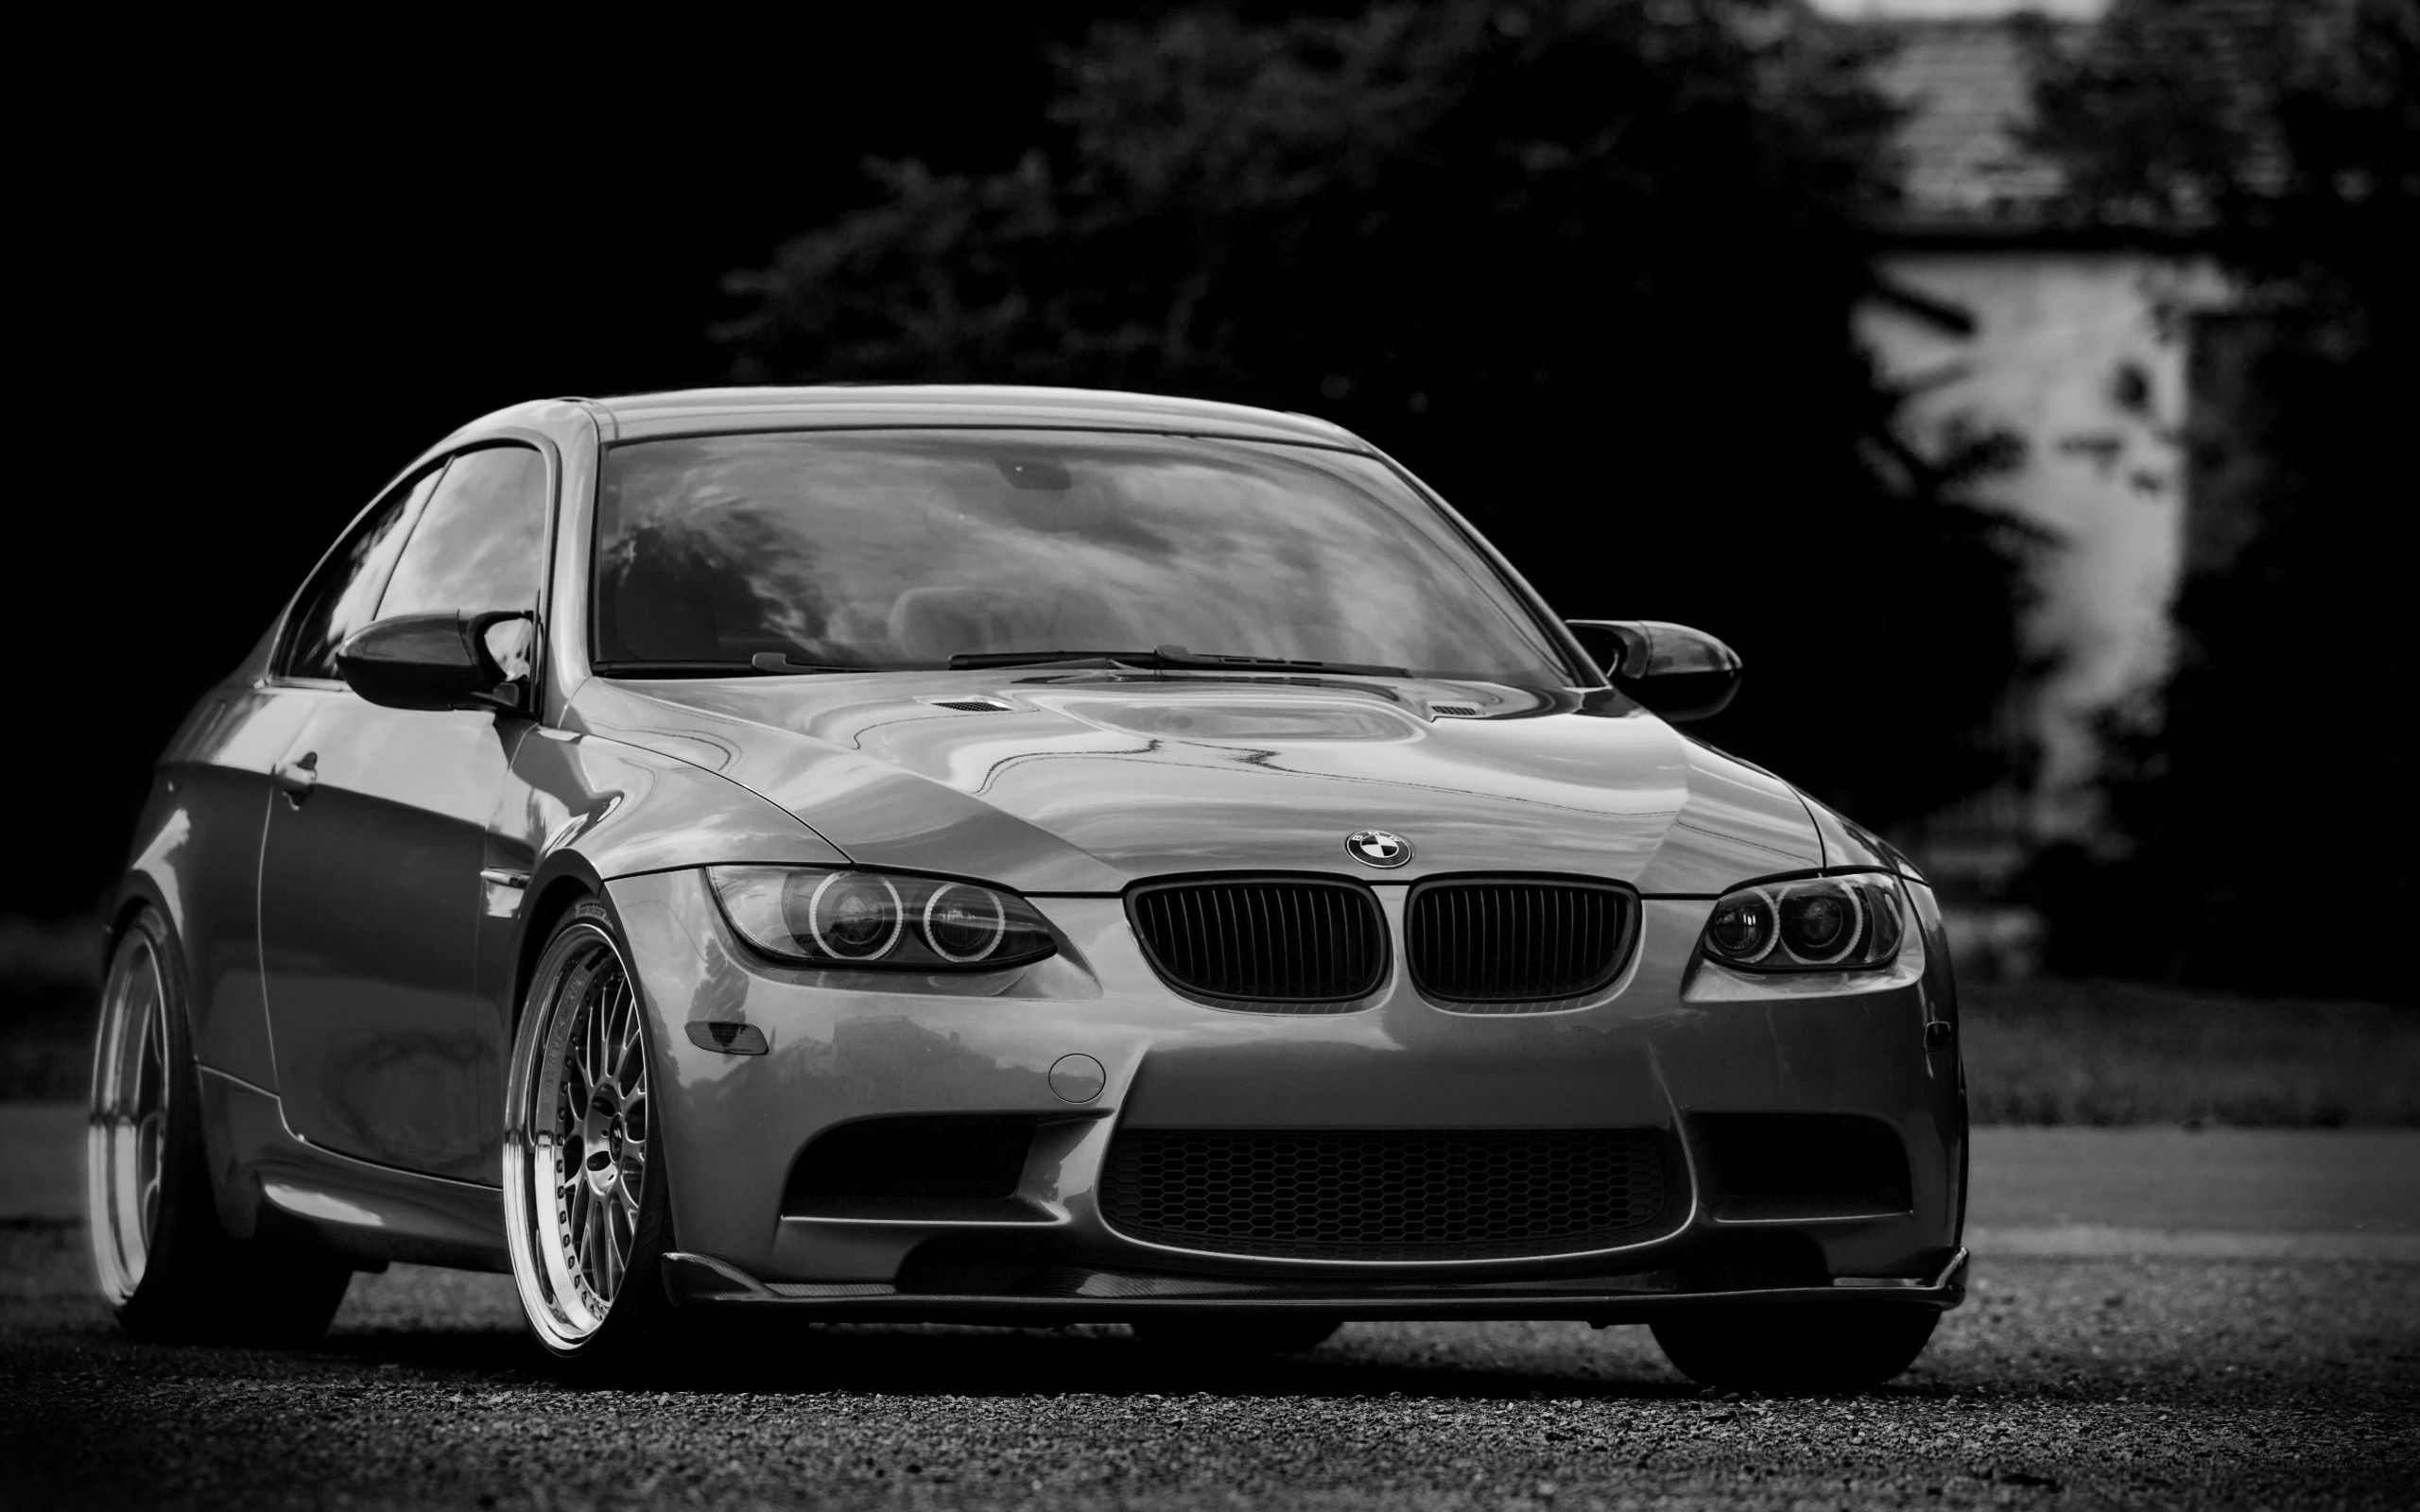 bmw m3 wallpaper 31 - [2560x1600]